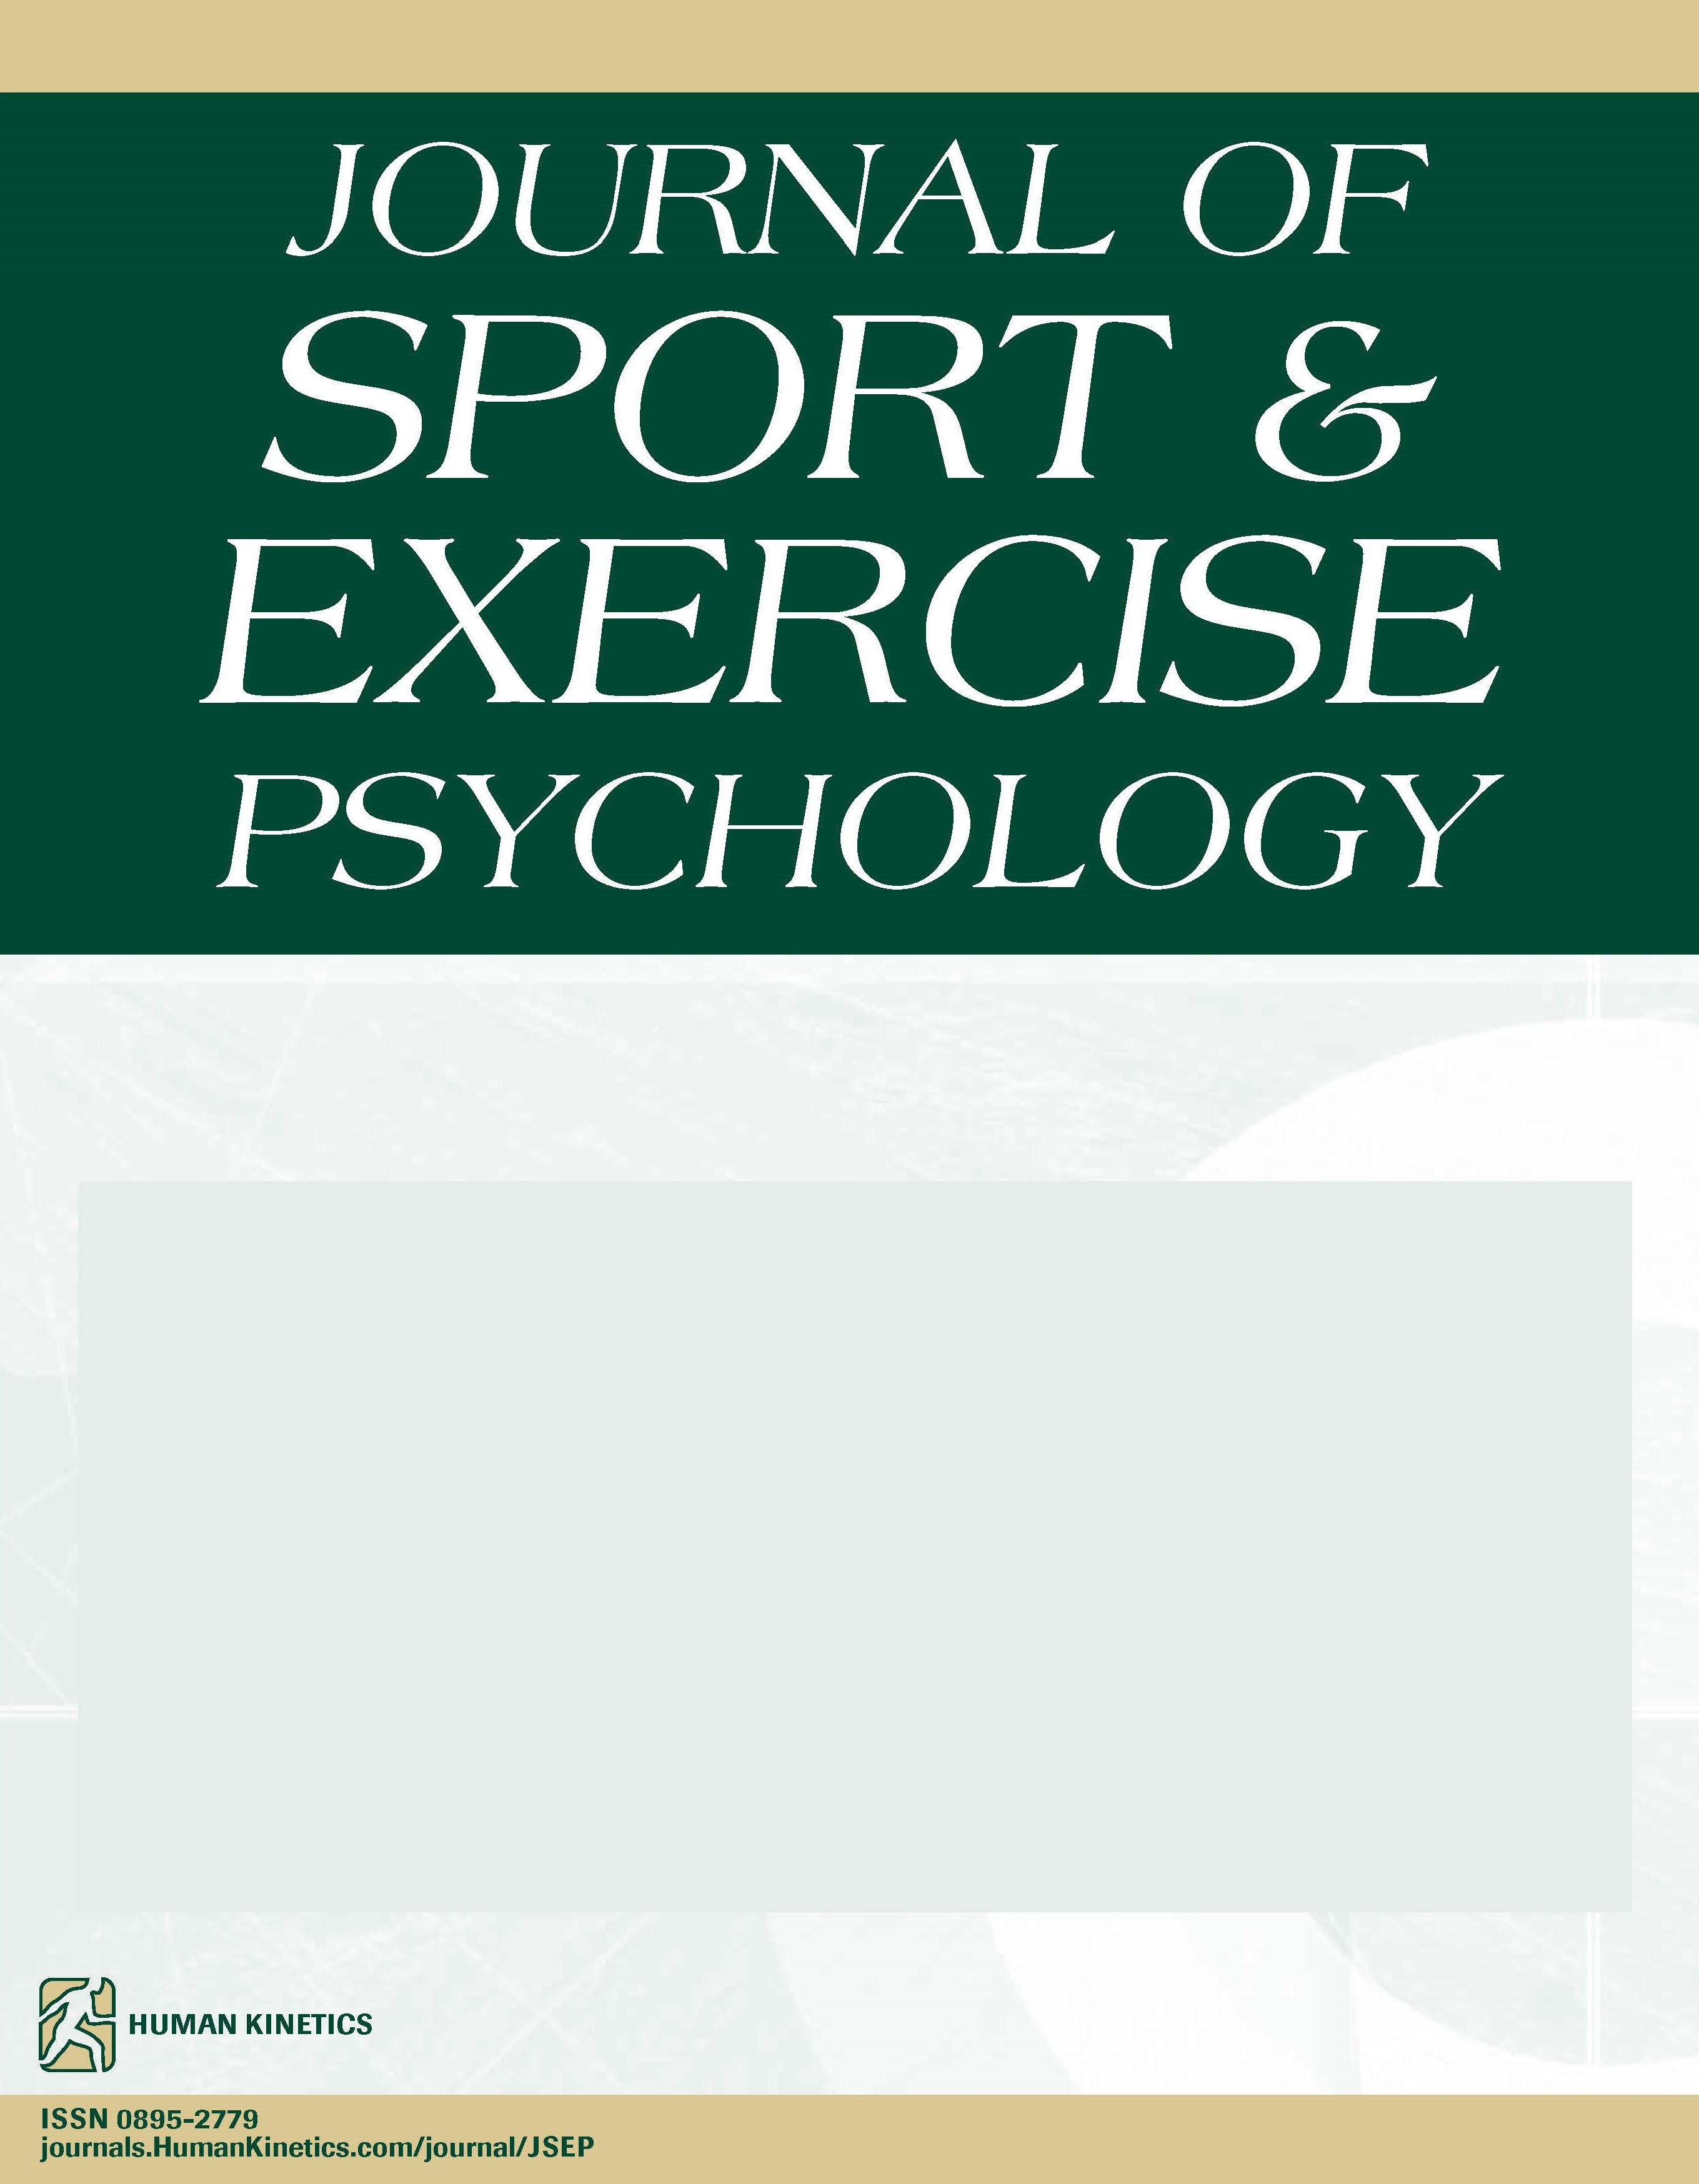 Journal of Sport and Exercise Psychology